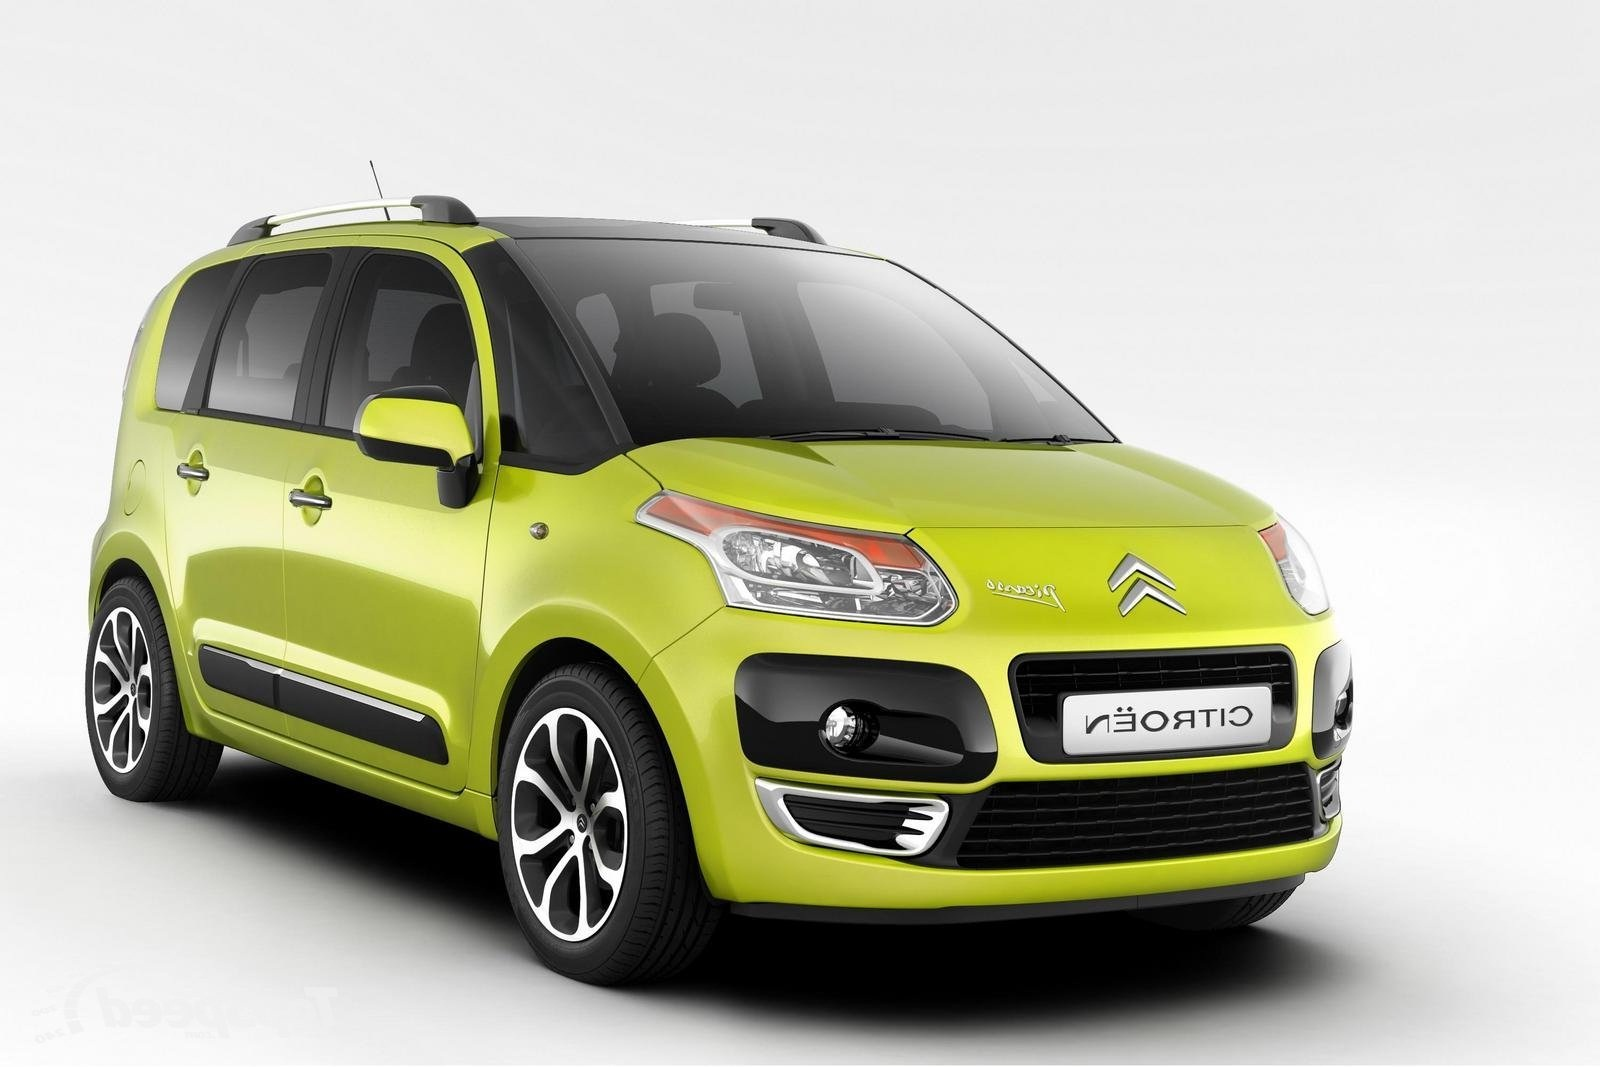 hd wallpapers 2009 citroen c3 picasso wallpapers. Black Bedroom Furniture Sets. Home Design Ideas